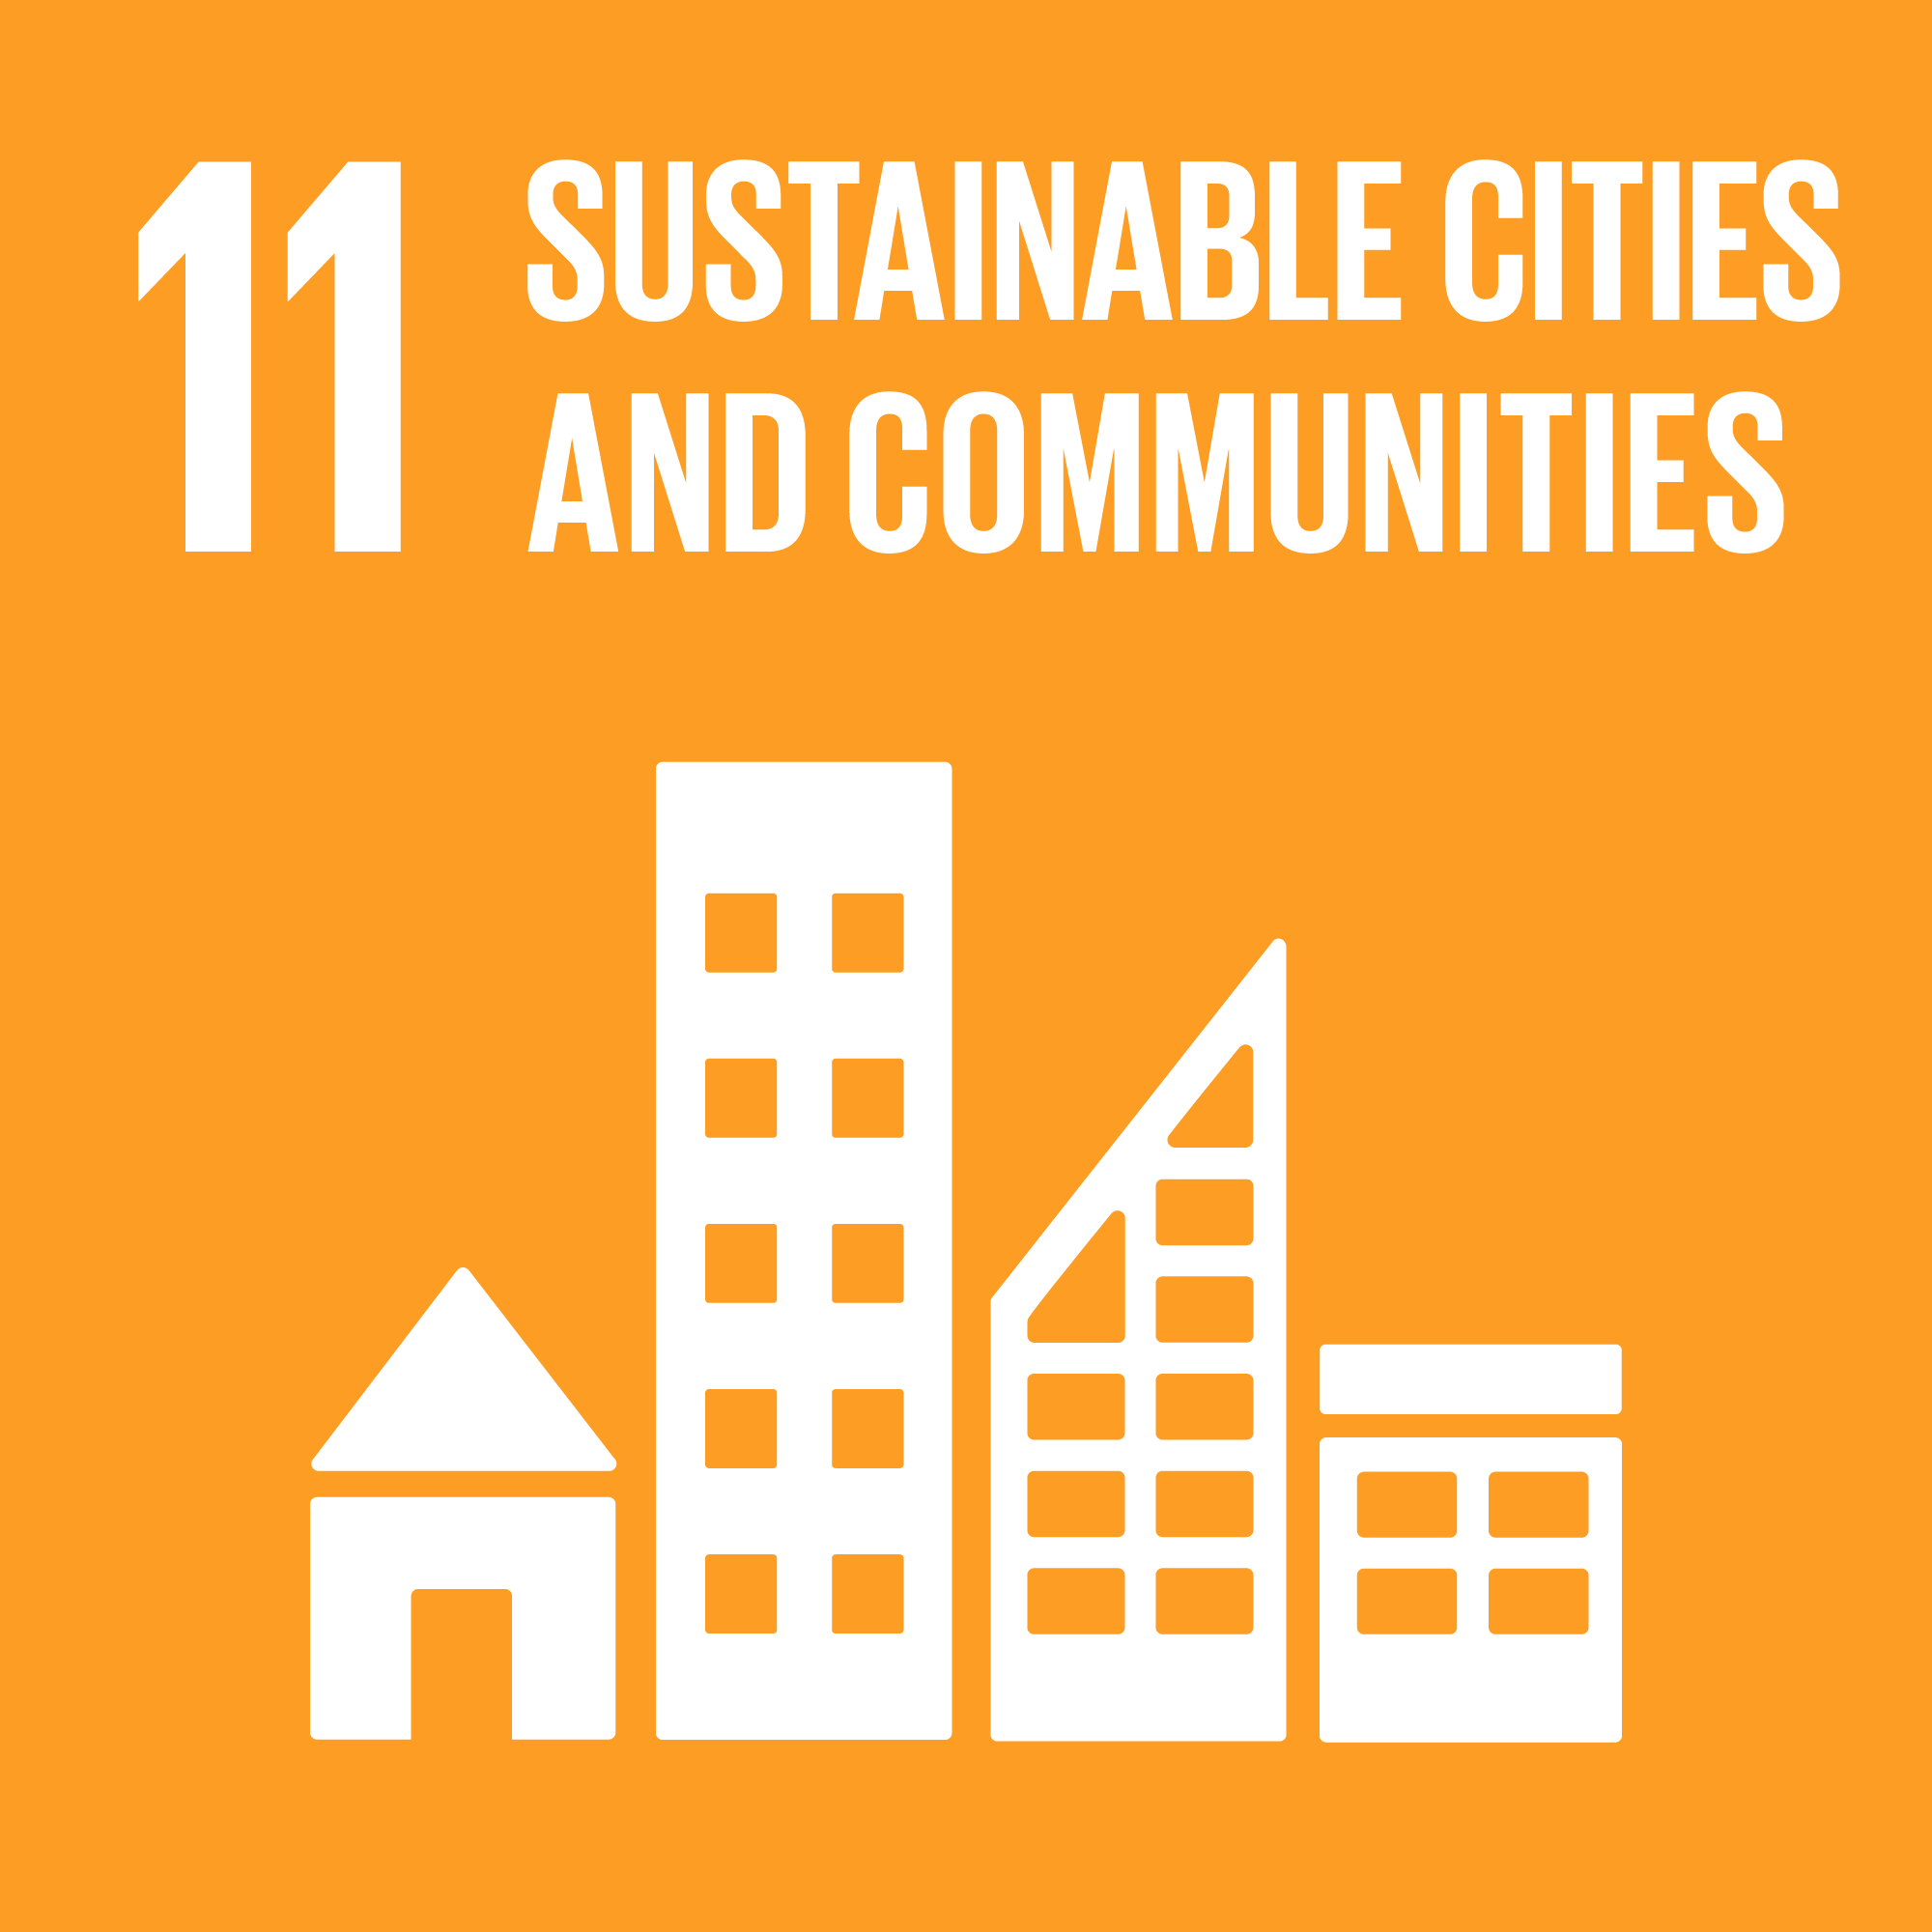 Goal 11. Make cities and human settlements inclusive, safe, resilient and sustainable    10 Targets    15 Indicators